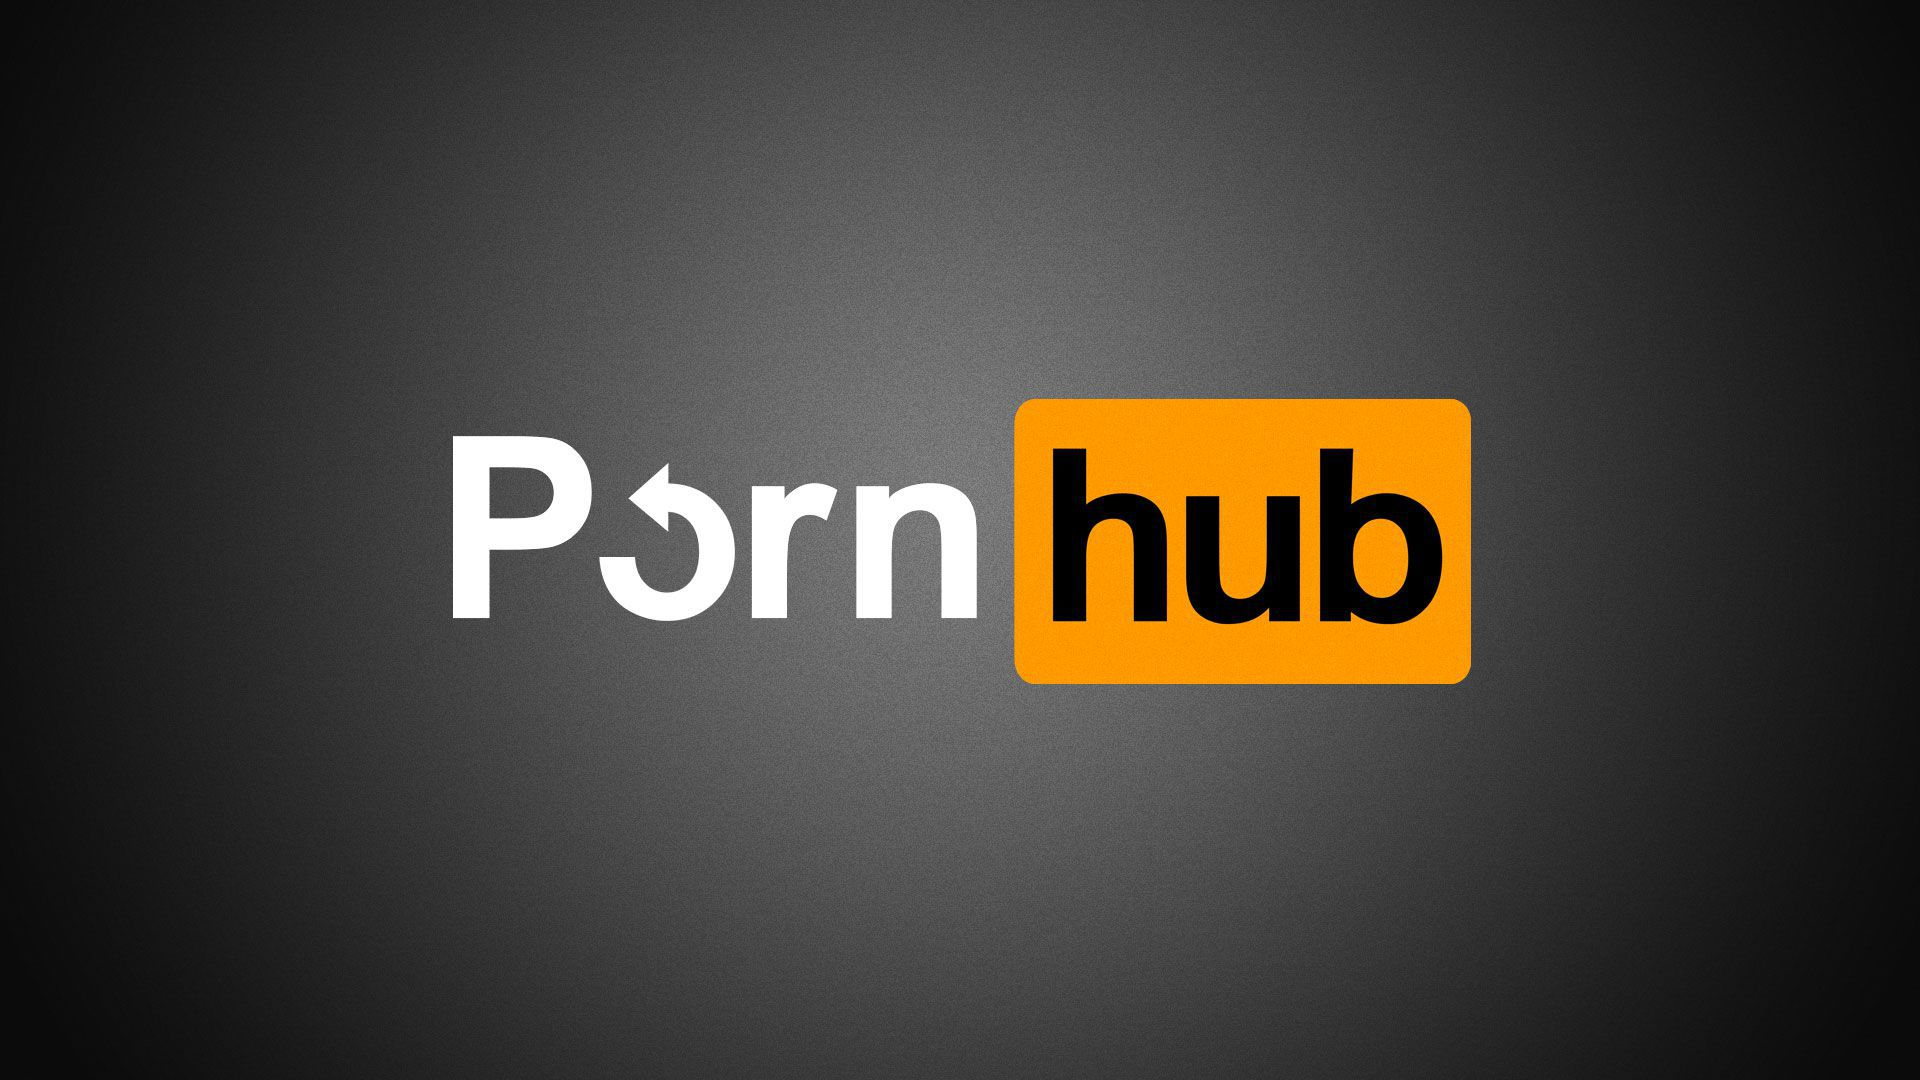 Illustration of the PornHub logo with a change icon replacing the O